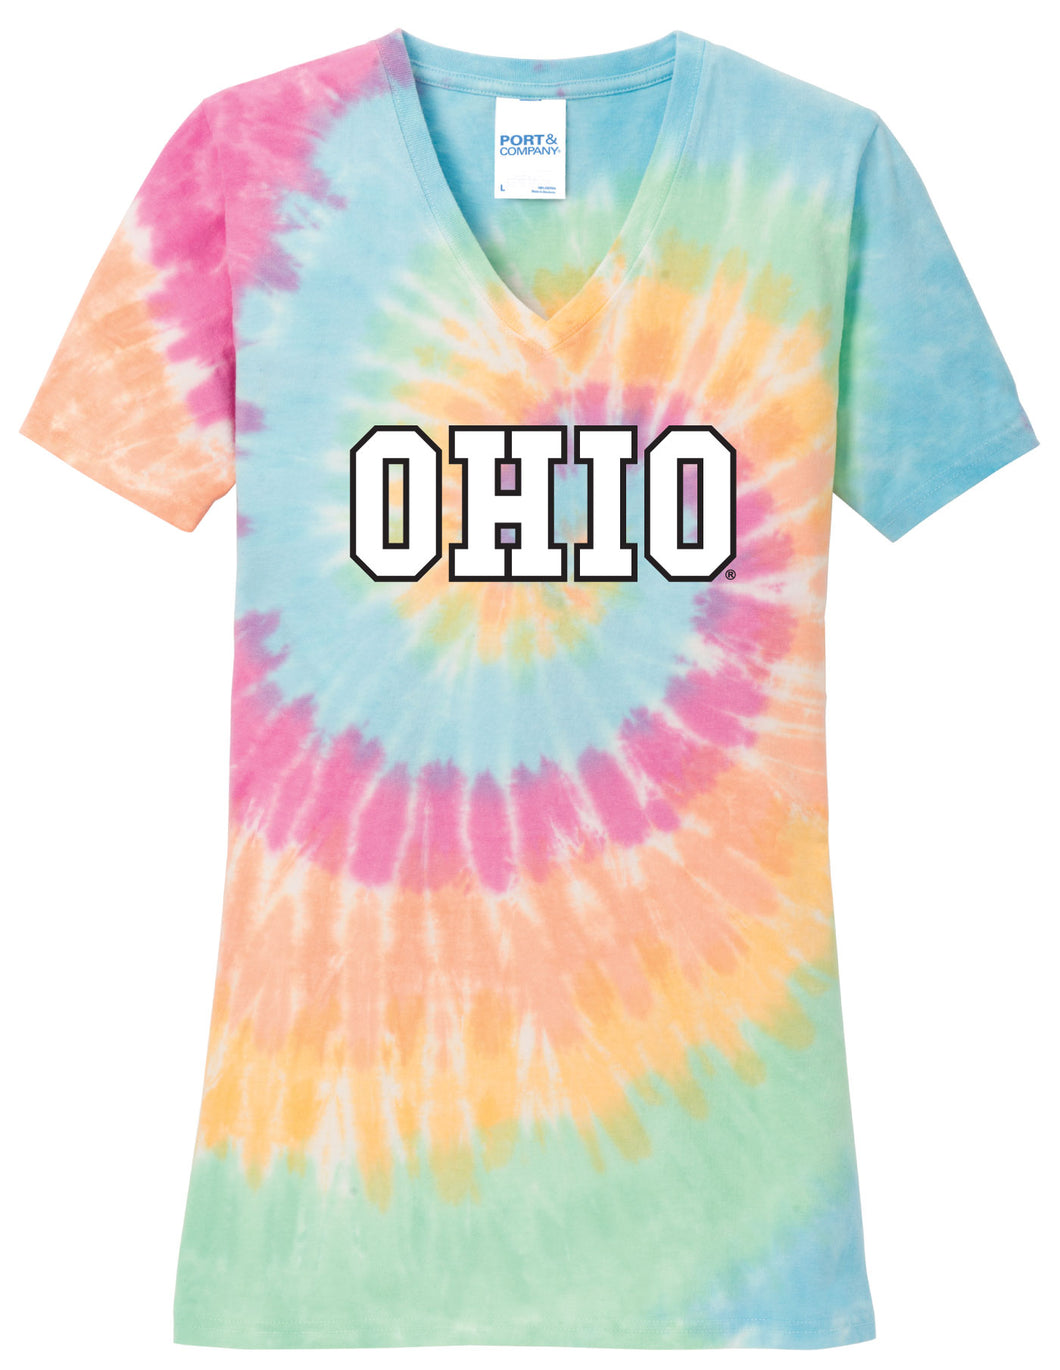 Ohio University Bobcats NCAA Tie Dye Women's Vneck T-Shirt